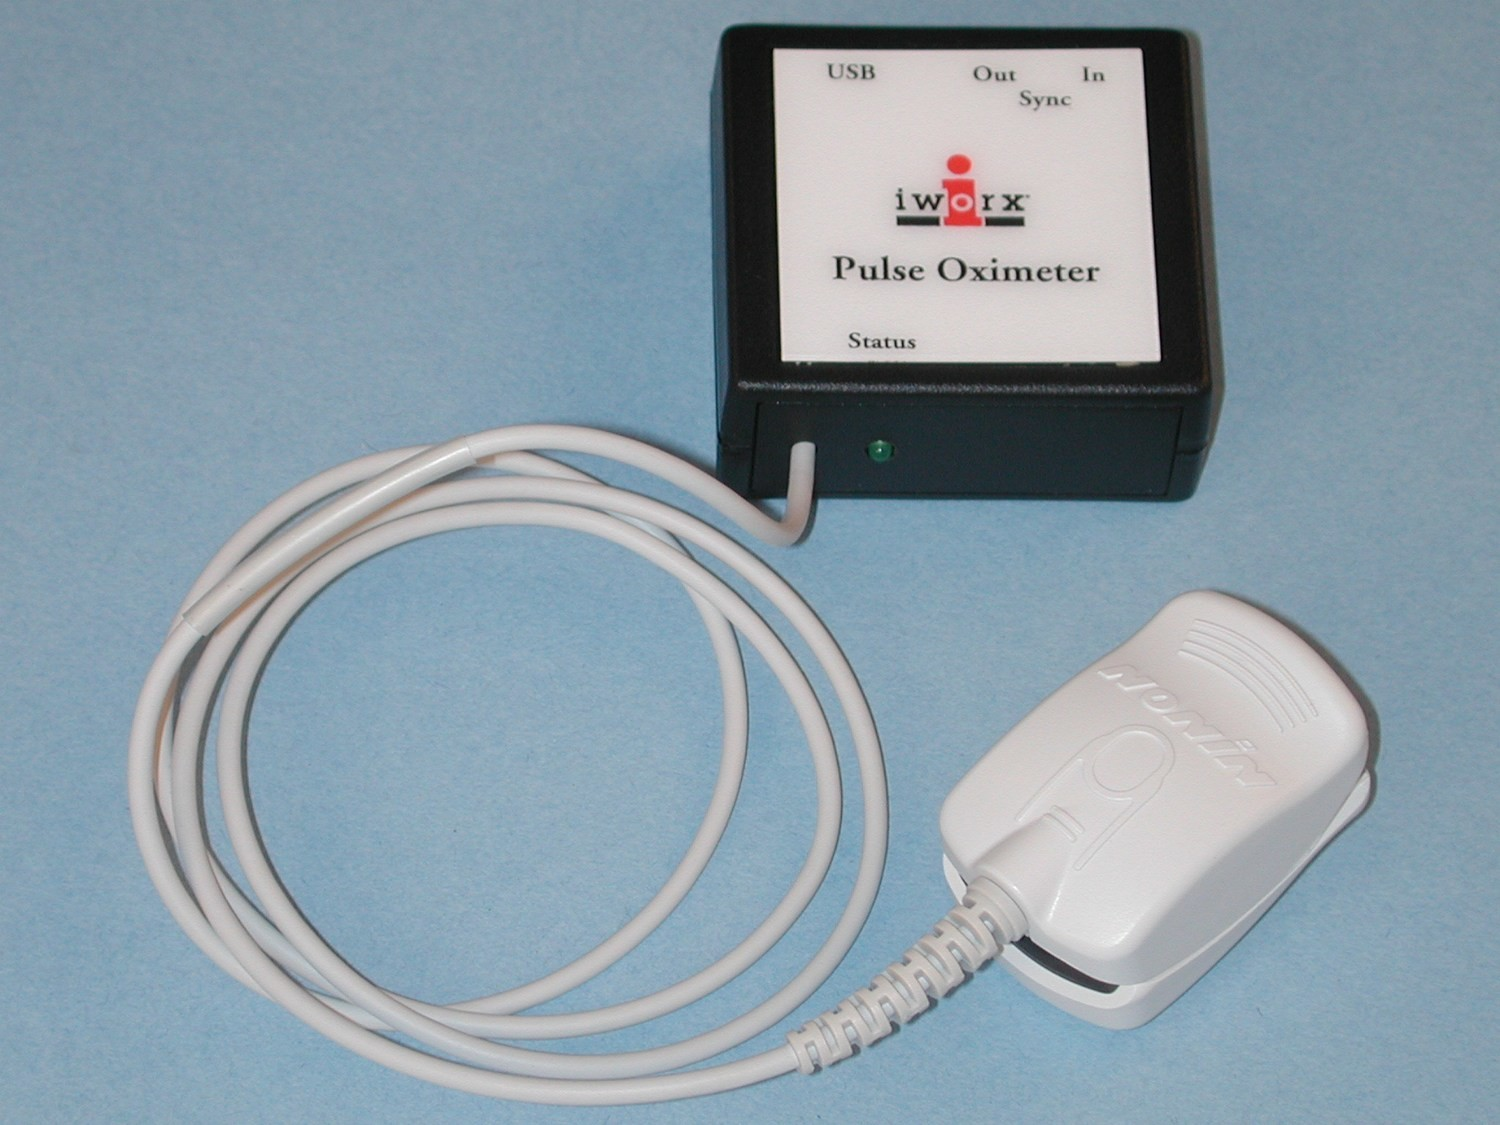 Pulse Ox with USB for connection to computer incl. LabScribe3 Software